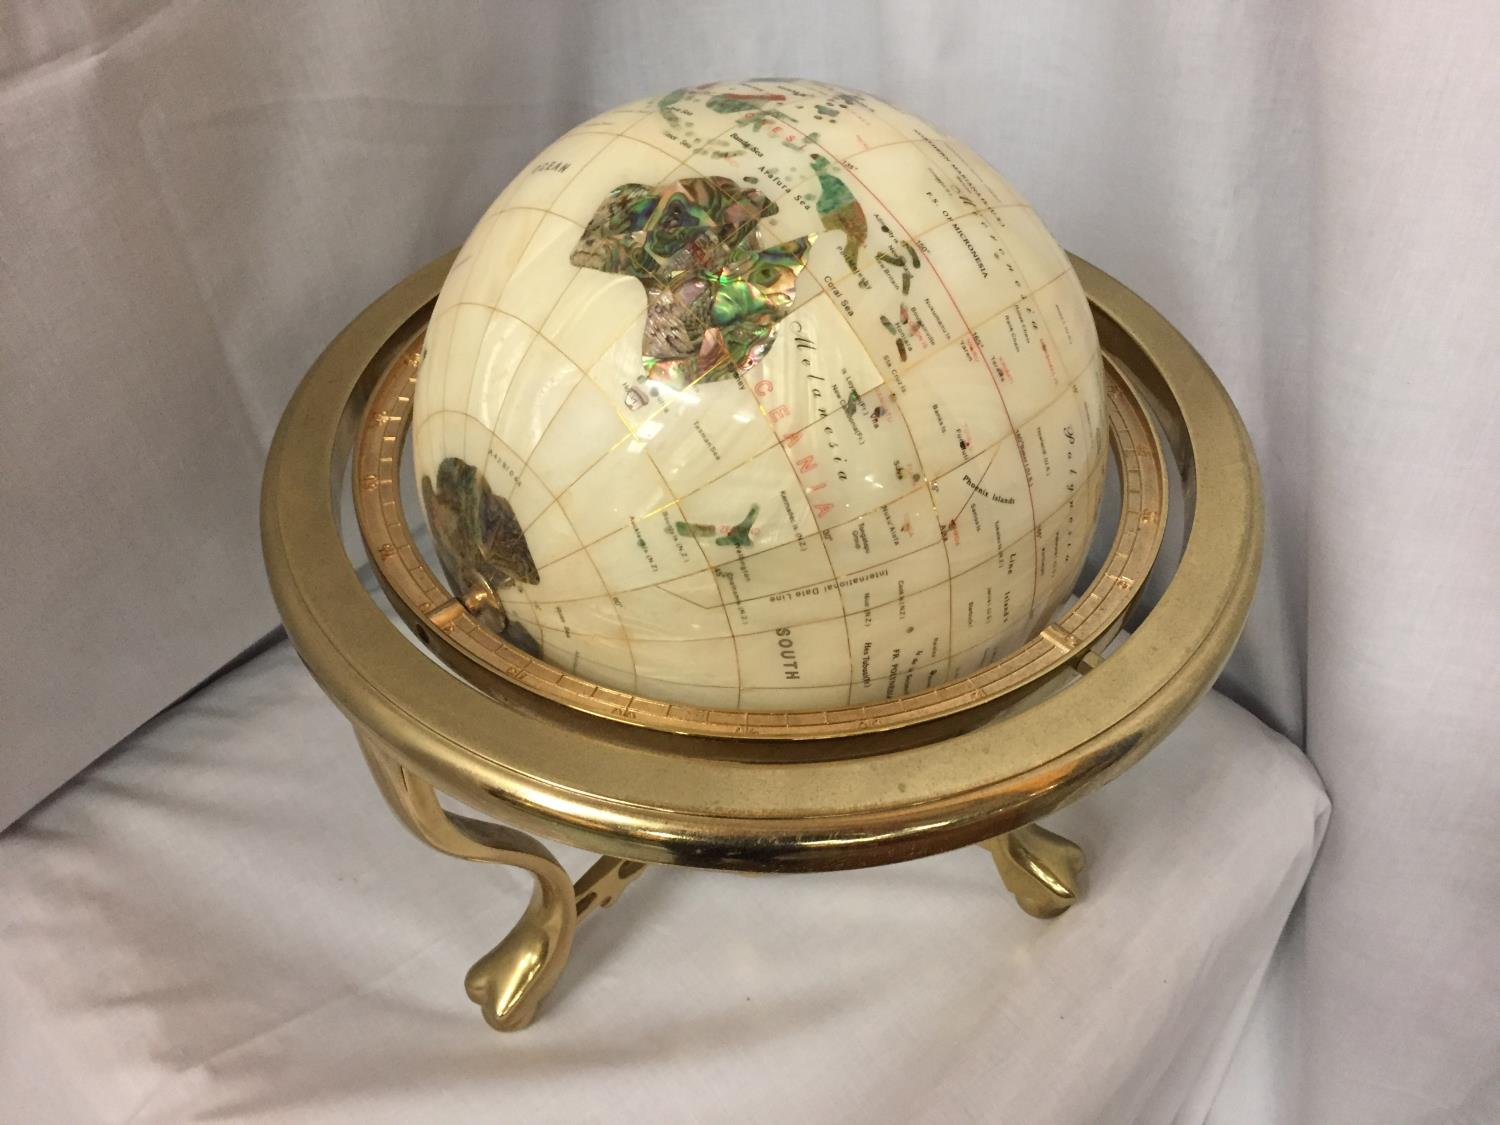 A GEM STONE AND PEARLISED GLOBE ON BRASS STAND 32CM HIGH - Image 4 of 4